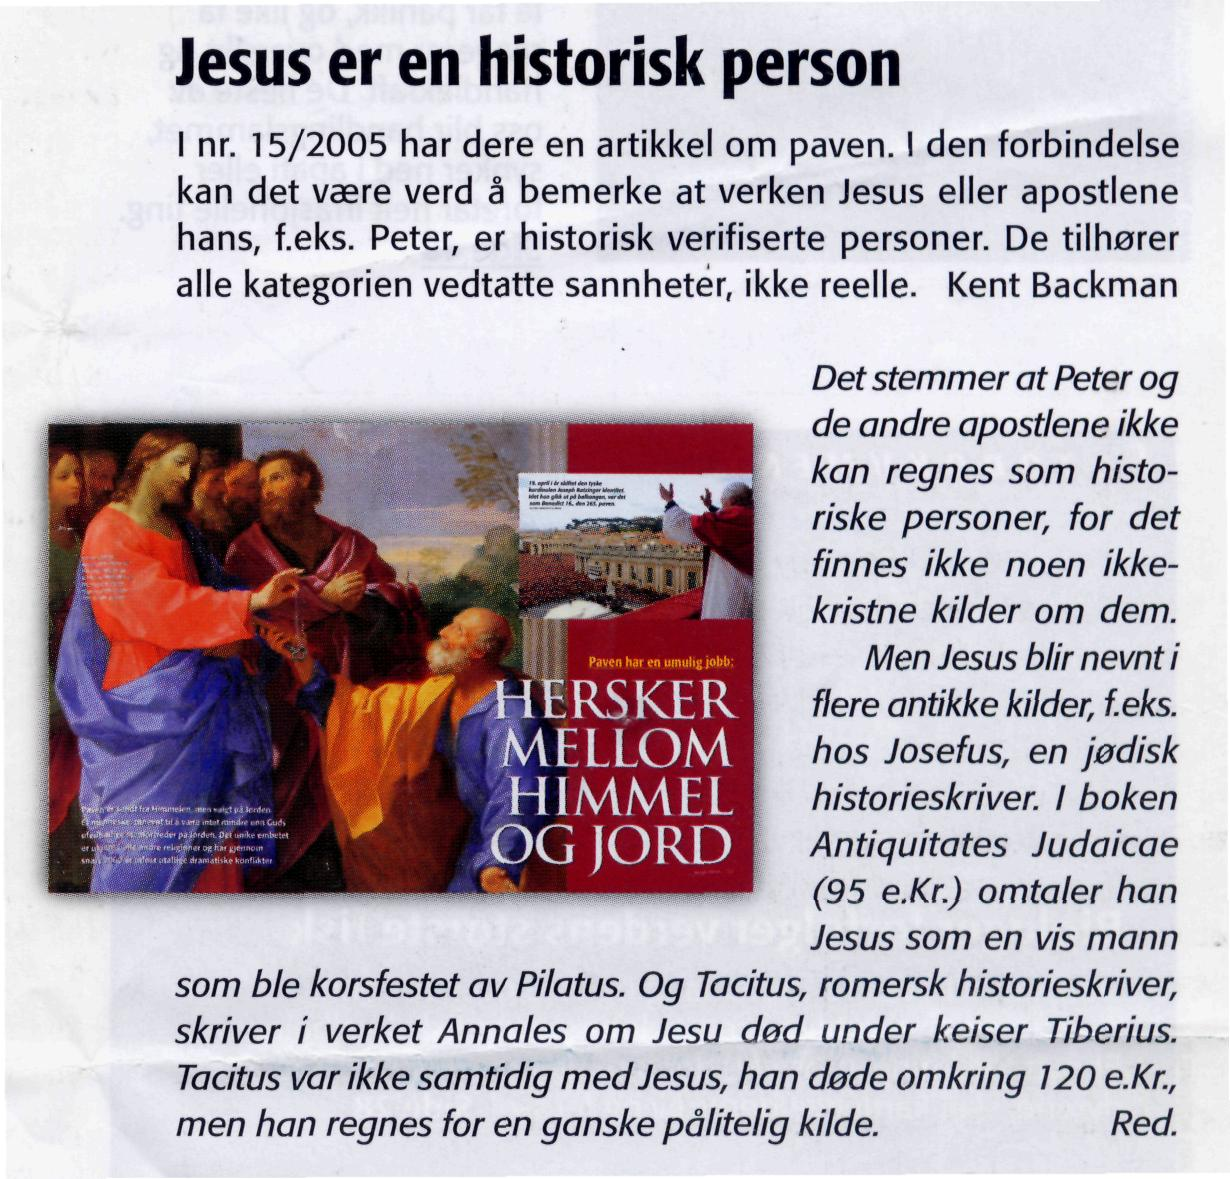 Jesus er en historisk person